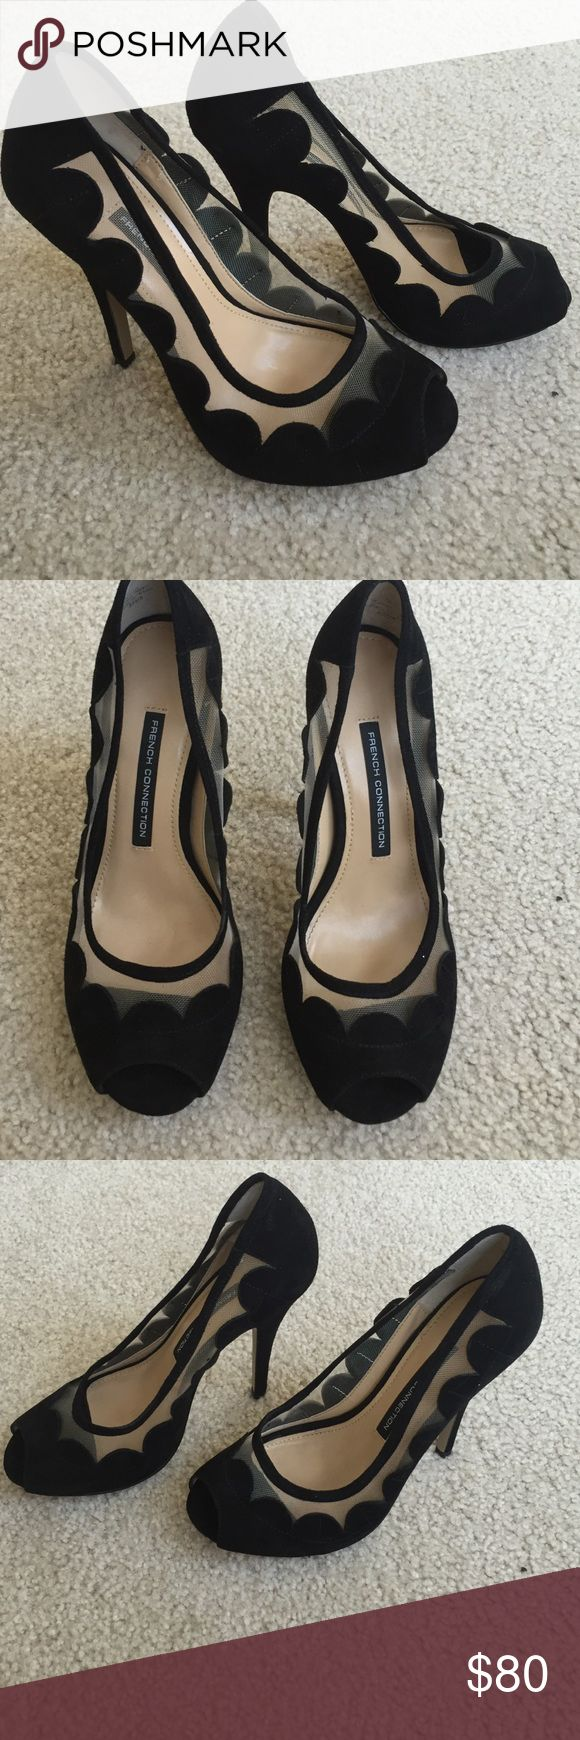 French Connection new black suede heels shoes 7.5 French Connection new black suede heels in size 7.5 , never worn they were store display no signs of wear besides a bit of bottom part from store try on. 🙅🏻 PLEASE DO NOT ASK LOWEST PRICE 🙅🏻 ------------ Instead ---------------- ✅ USE OFFER BUTTON ✅ --------😐 no low balling please😐-------- 💁🏻 NO DRAMA HERE LETS BE NICE 🤗 🚫🚭 SMOKE FREE - PET FREE HOME 🚫🐾 French Connection Shoes Heels